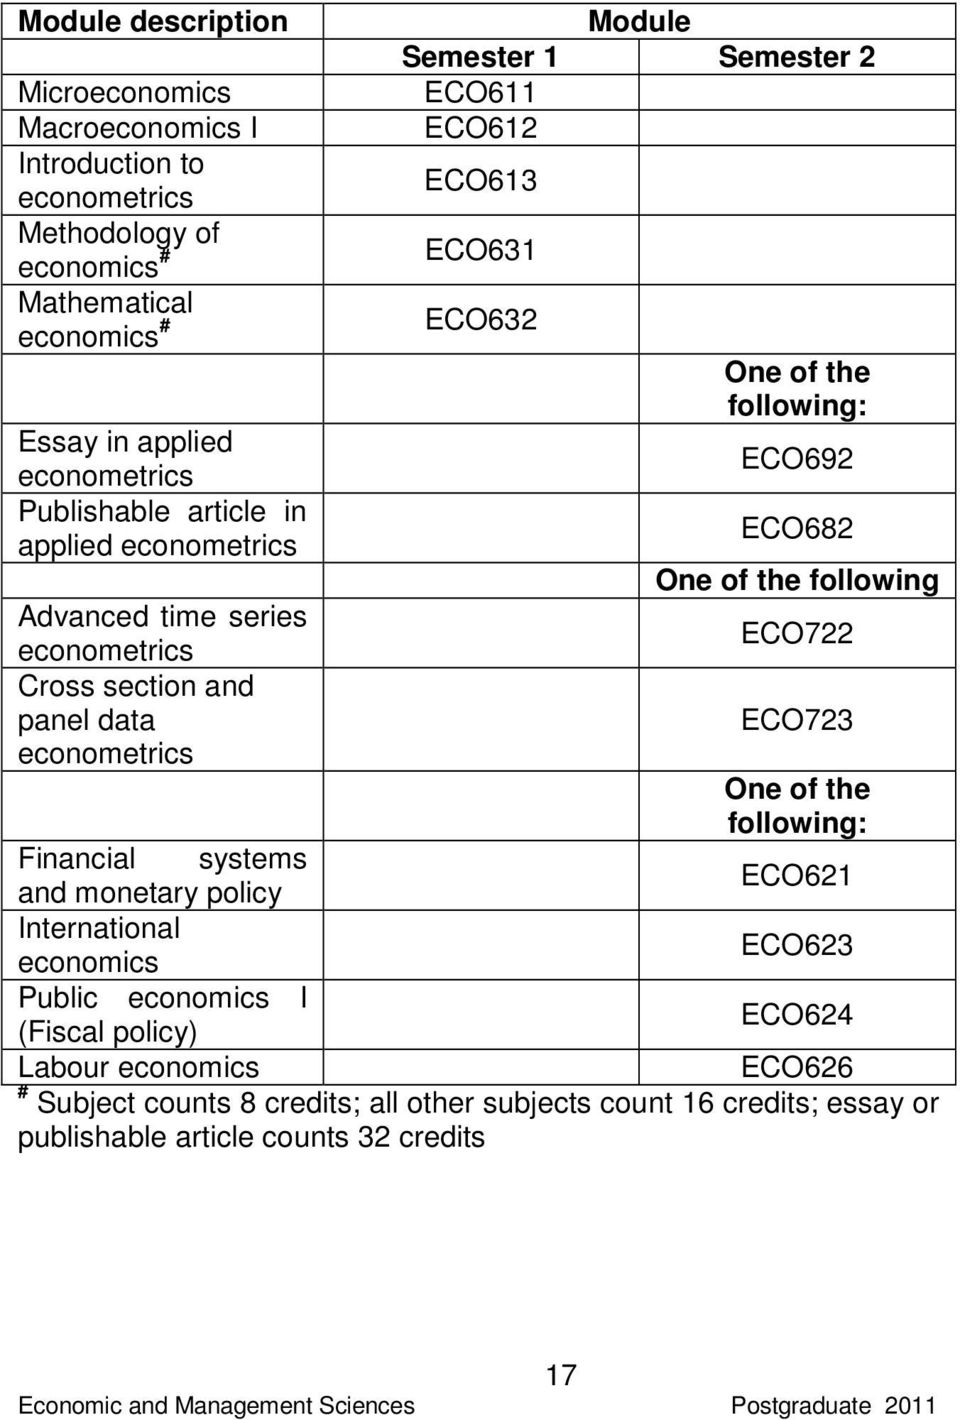 time series ECO722 econometrics Cross section and panel data econometrics ECO723 One of the following: Financial systems and monetary policy ECO621 International economics